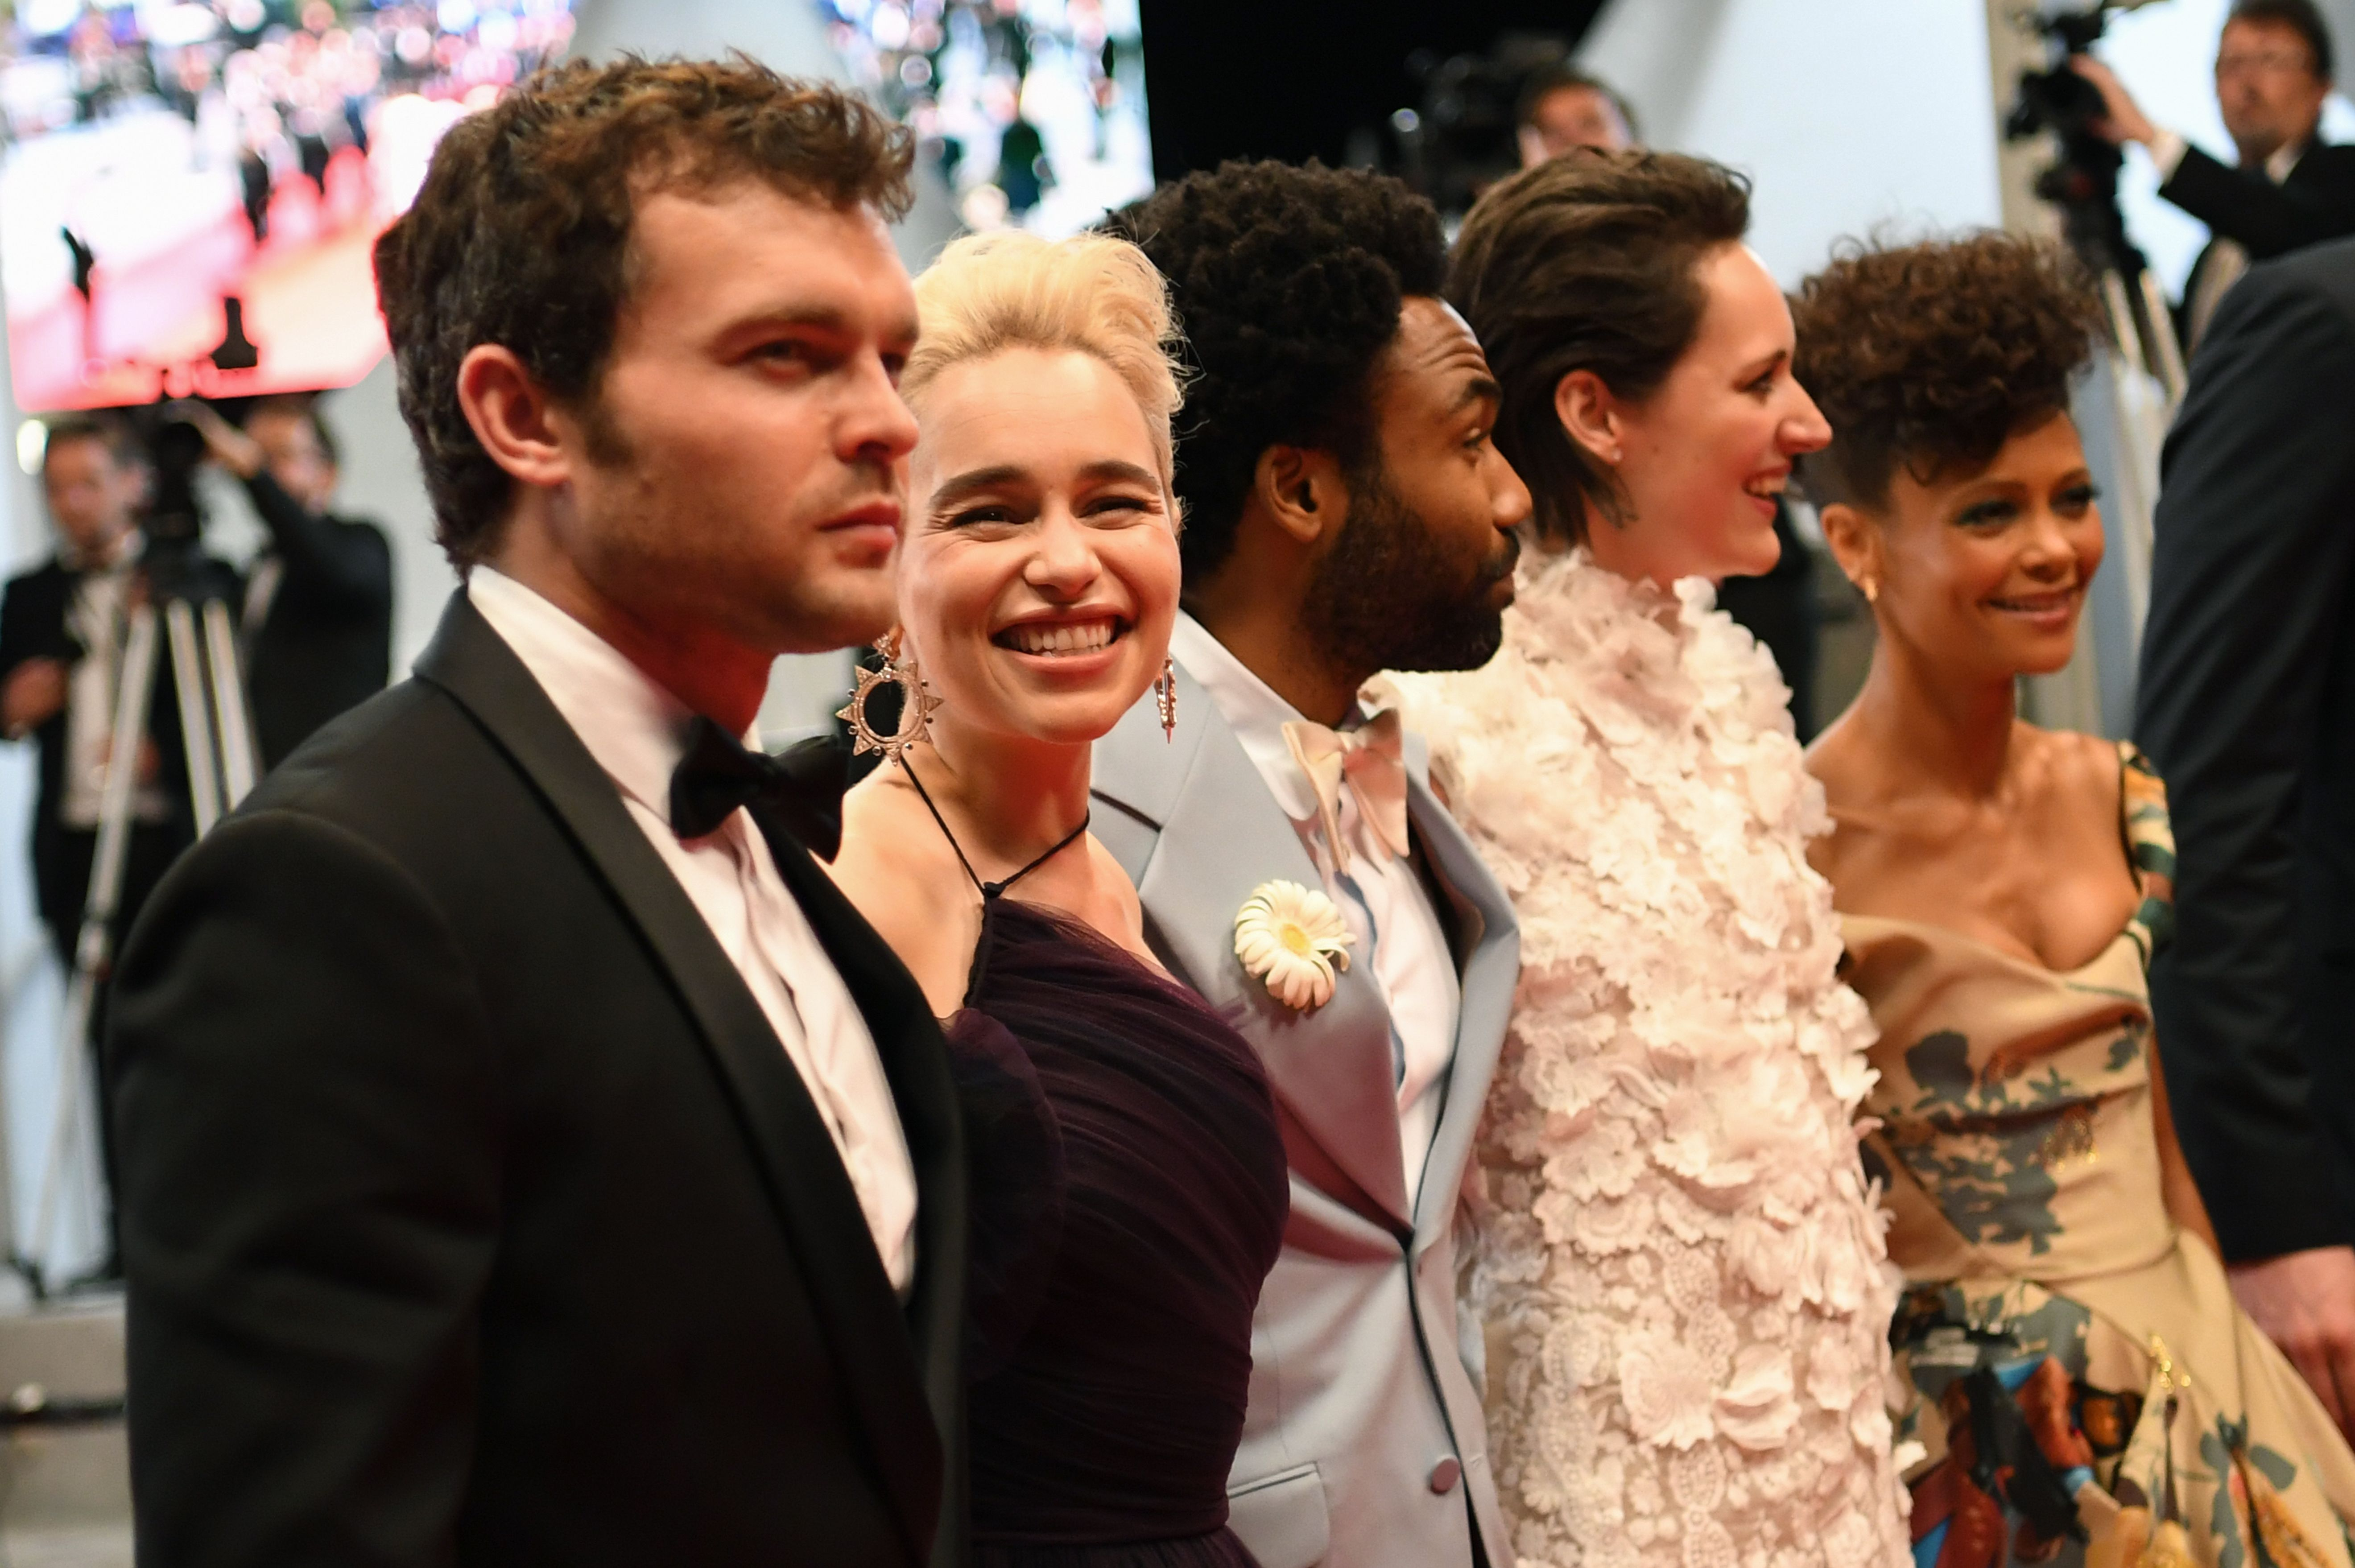 US actor Alden Ehrenreich, British actress Emilia Clarke, US actor Donald Glover, British actress Phoebe Waller-Bridge and British actress Thandie Newton pose as they leave the Festival Palace on May 15, 2018.